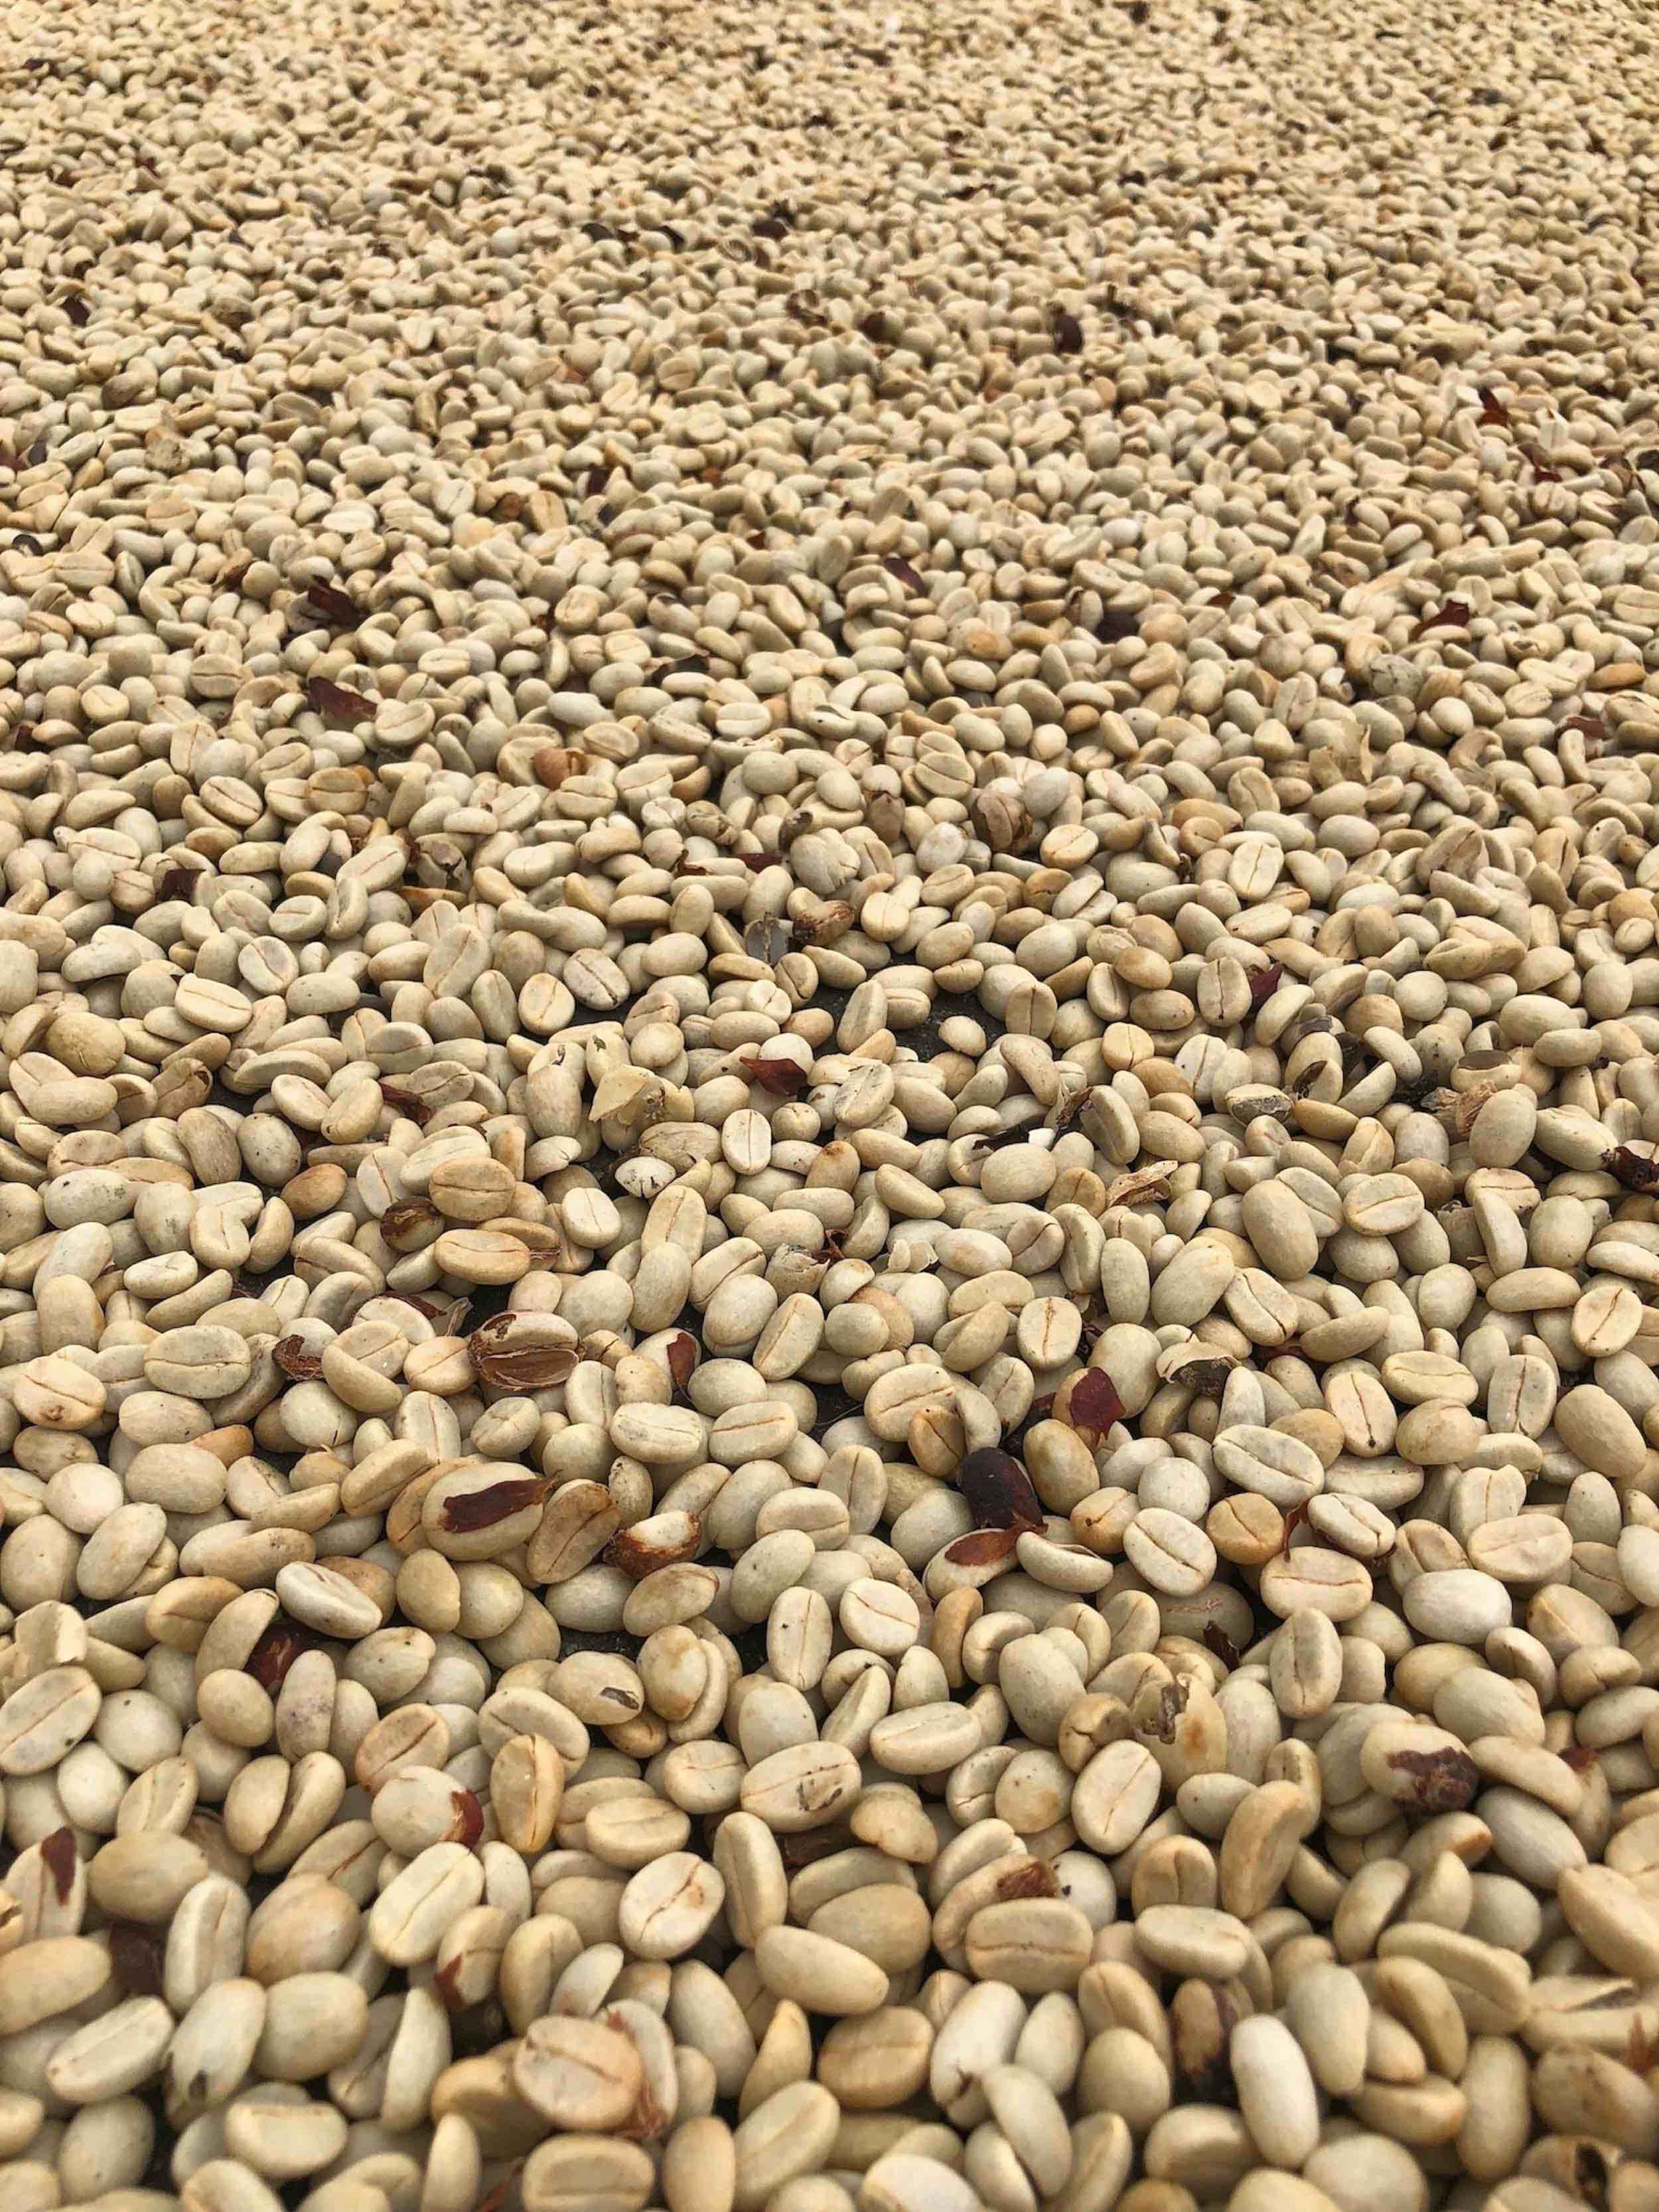 coffee beans from Kona set out to dry before being peeled and roasted